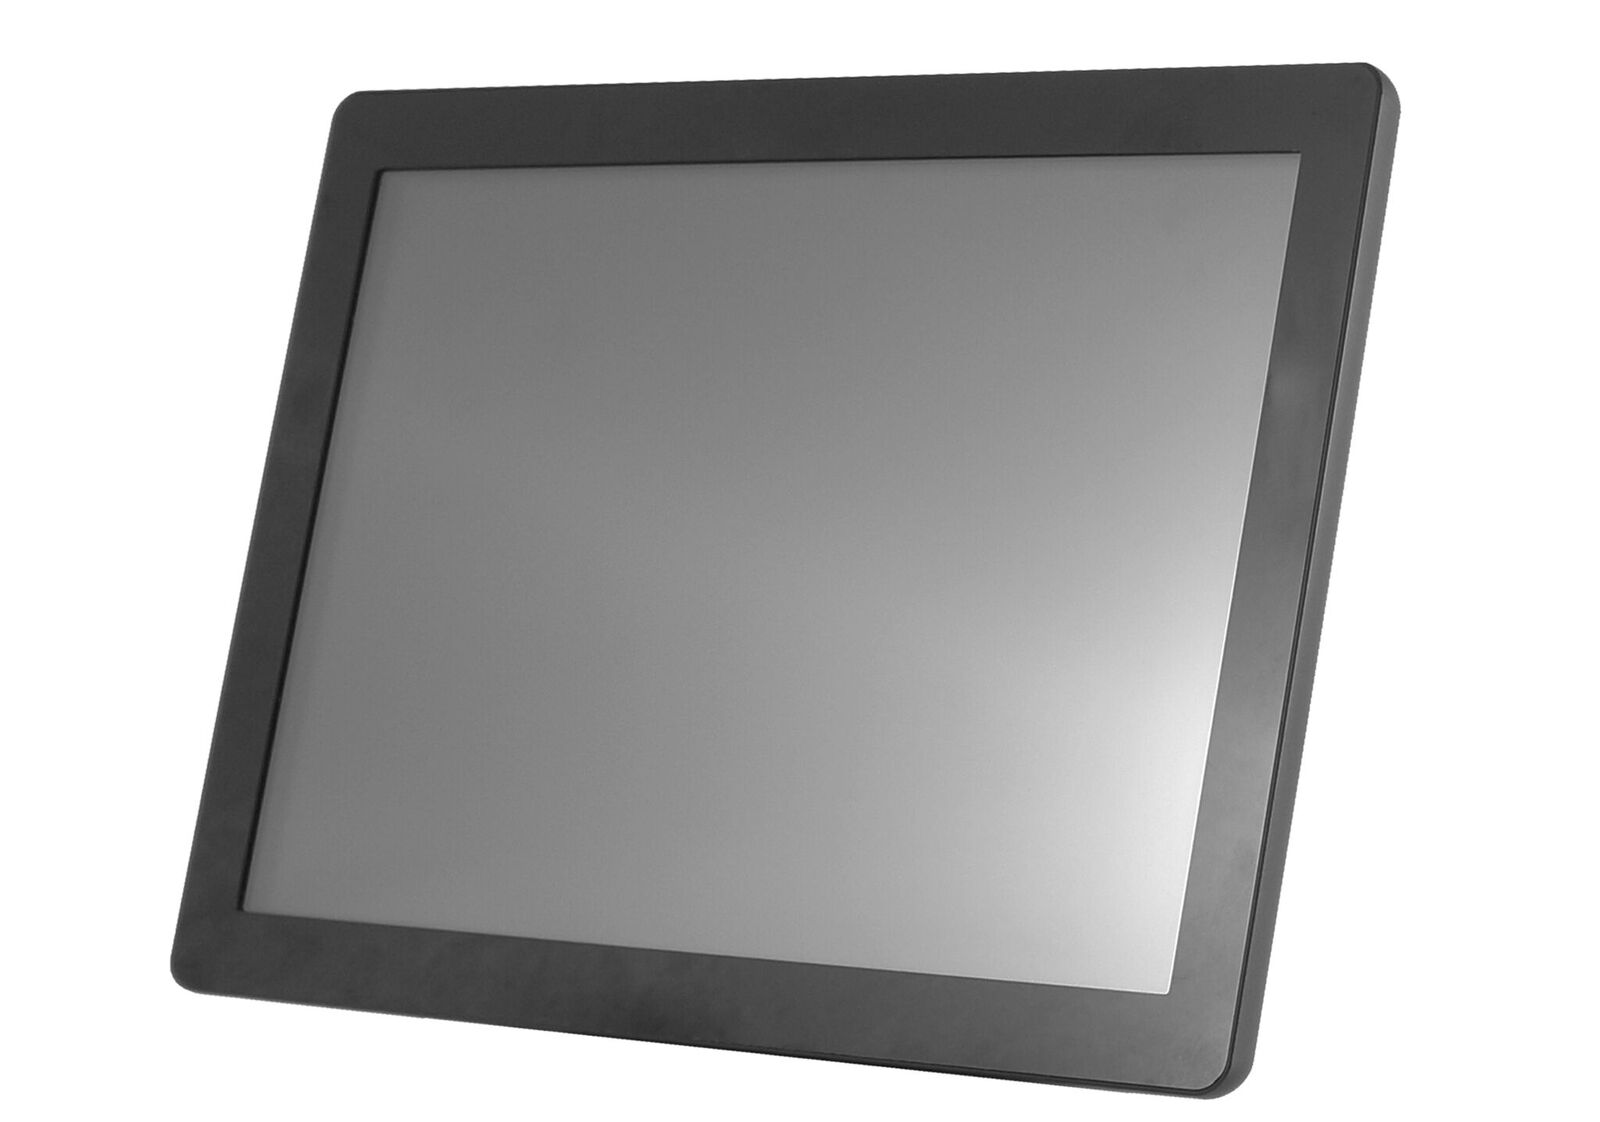 10'' Glass display - 800x600, 250nt, USB